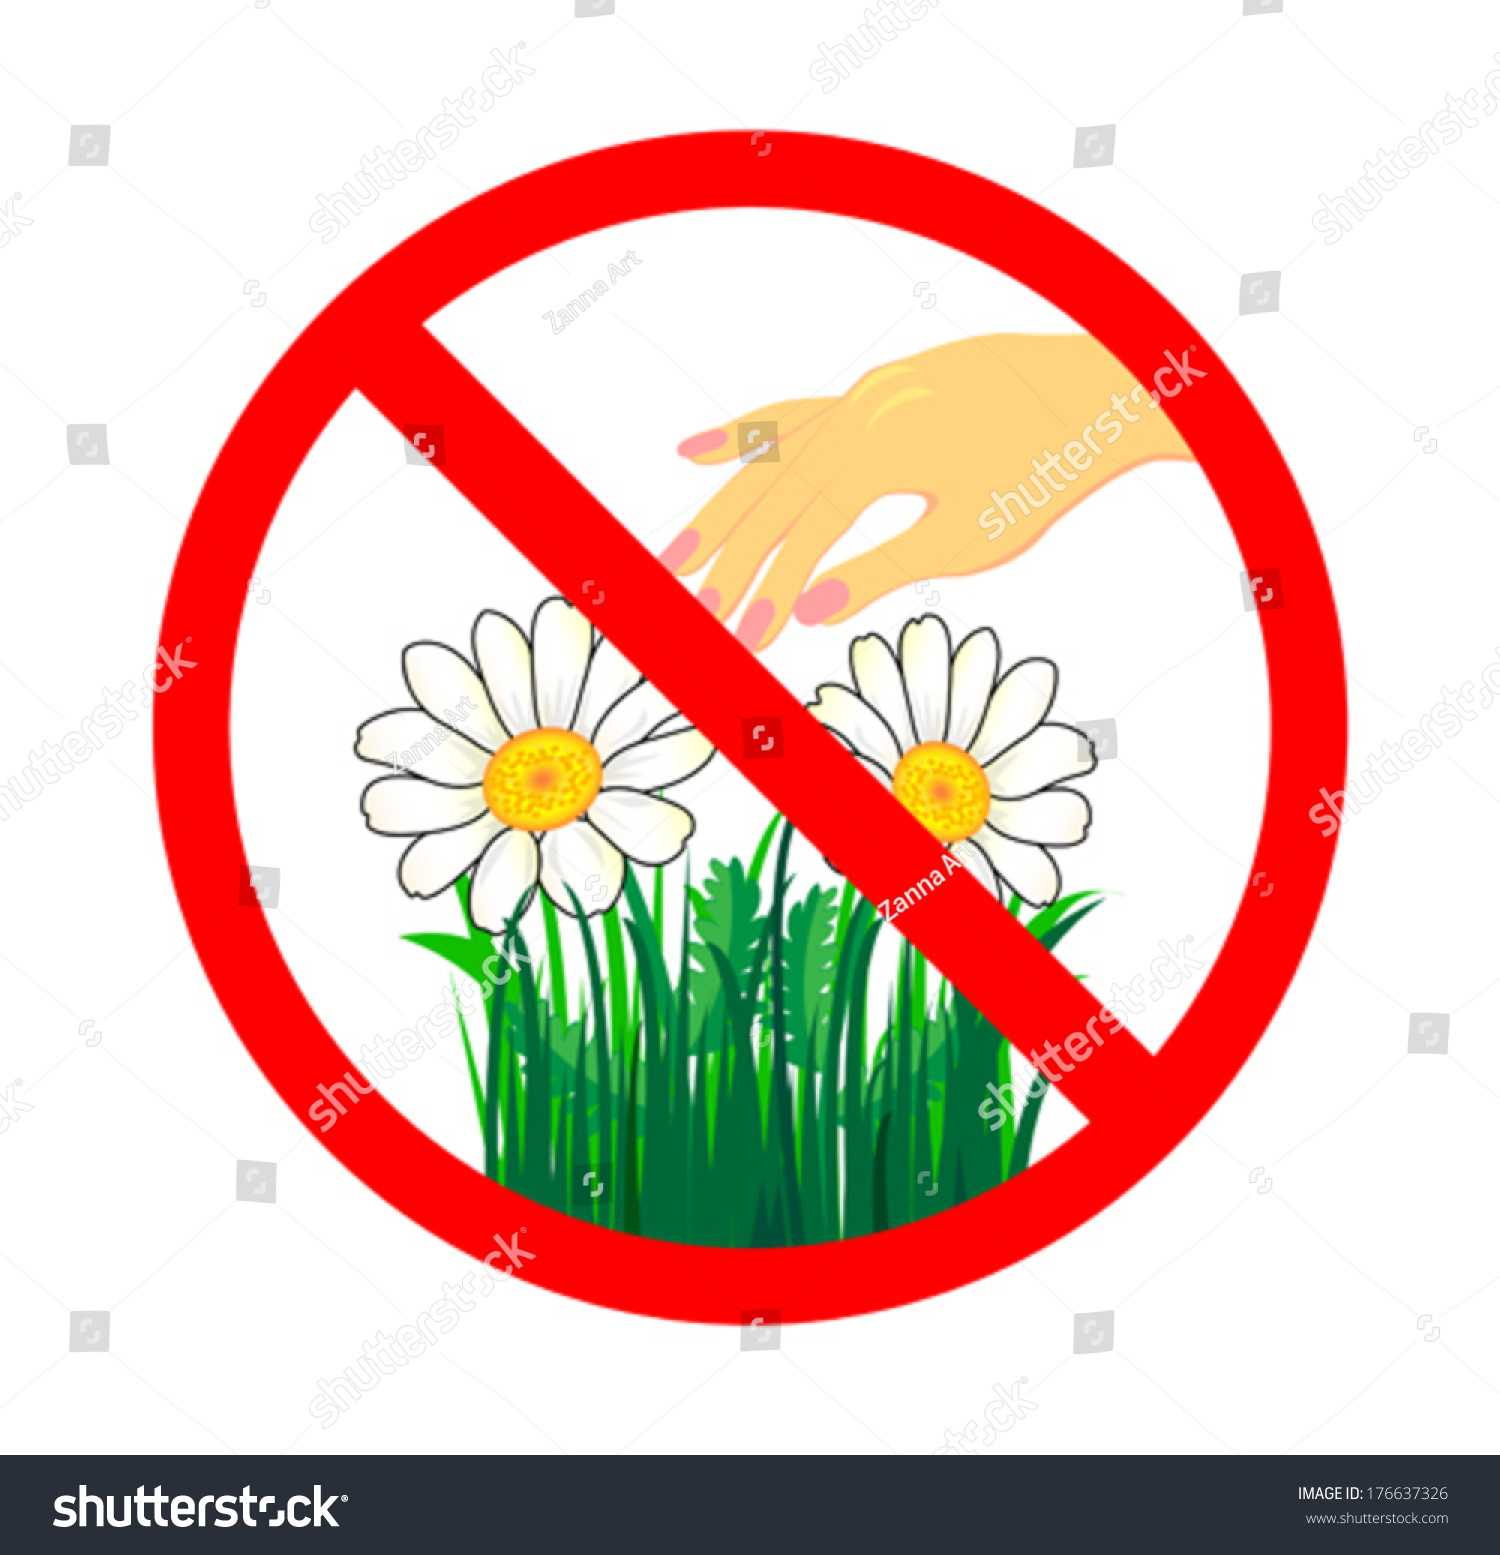 do not pick flower signred cycle stock vector 176637326